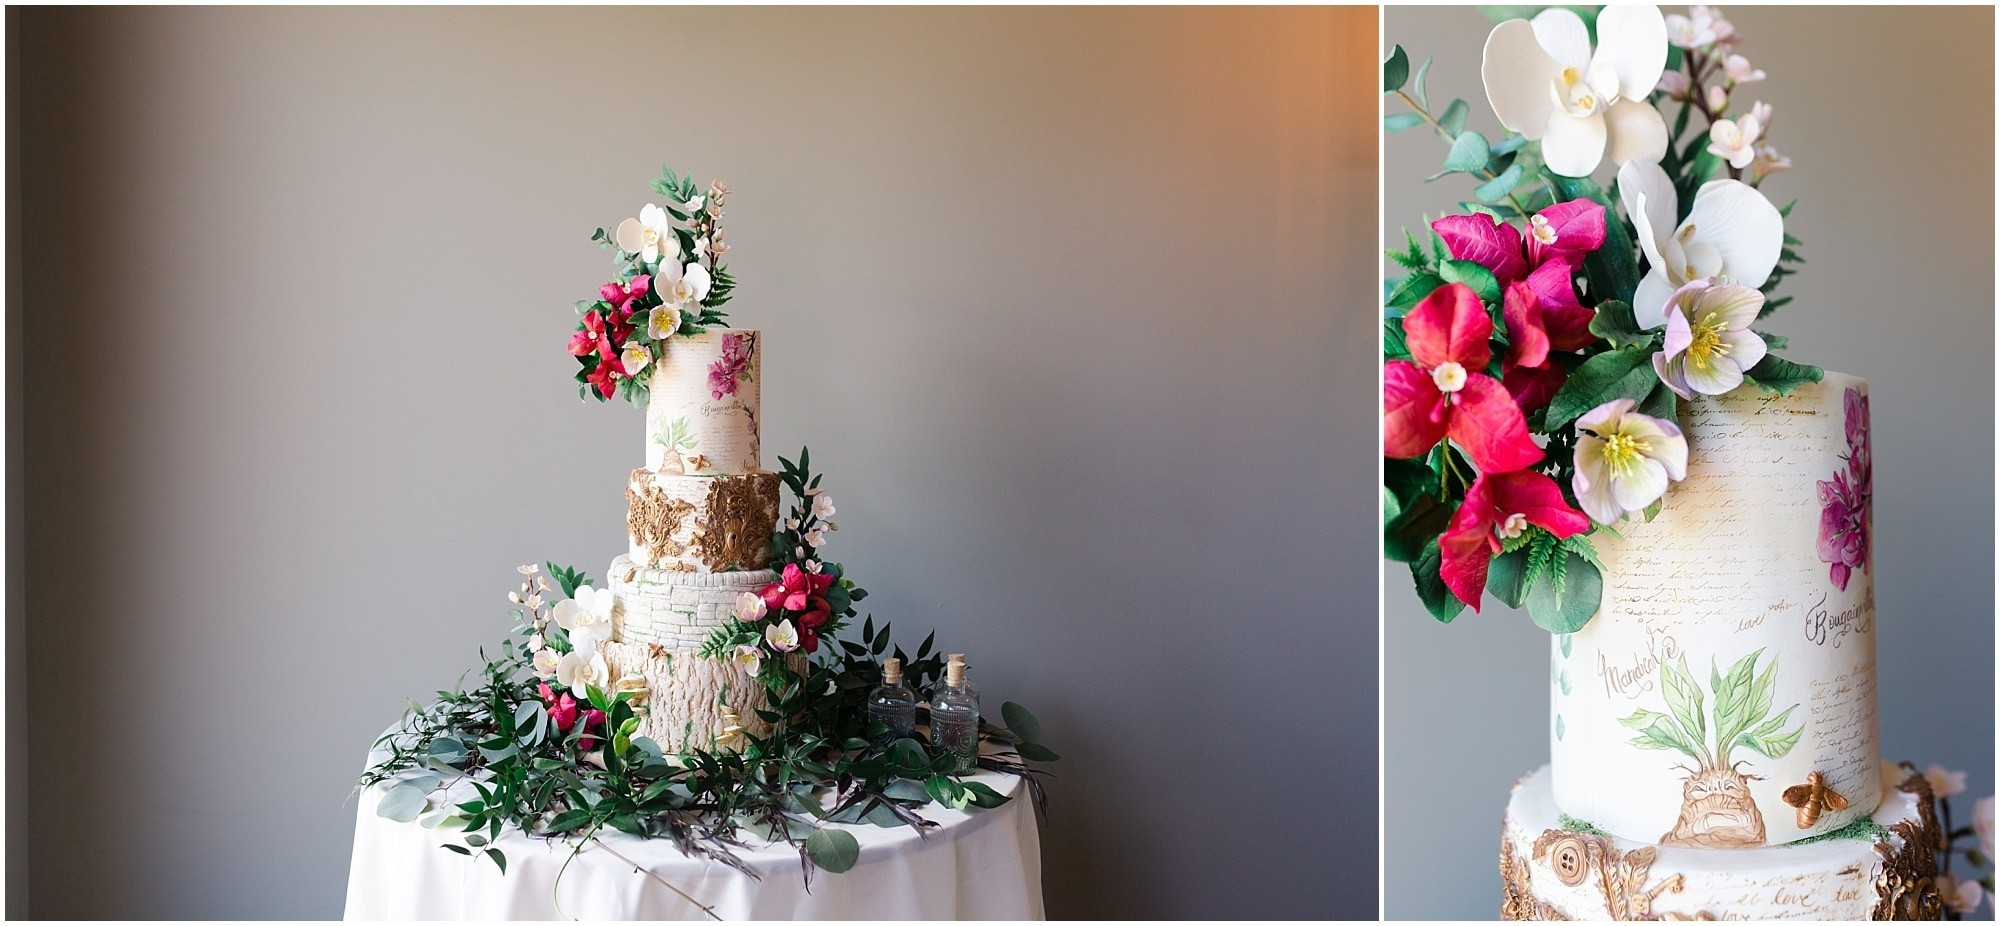 right baker for your wedding